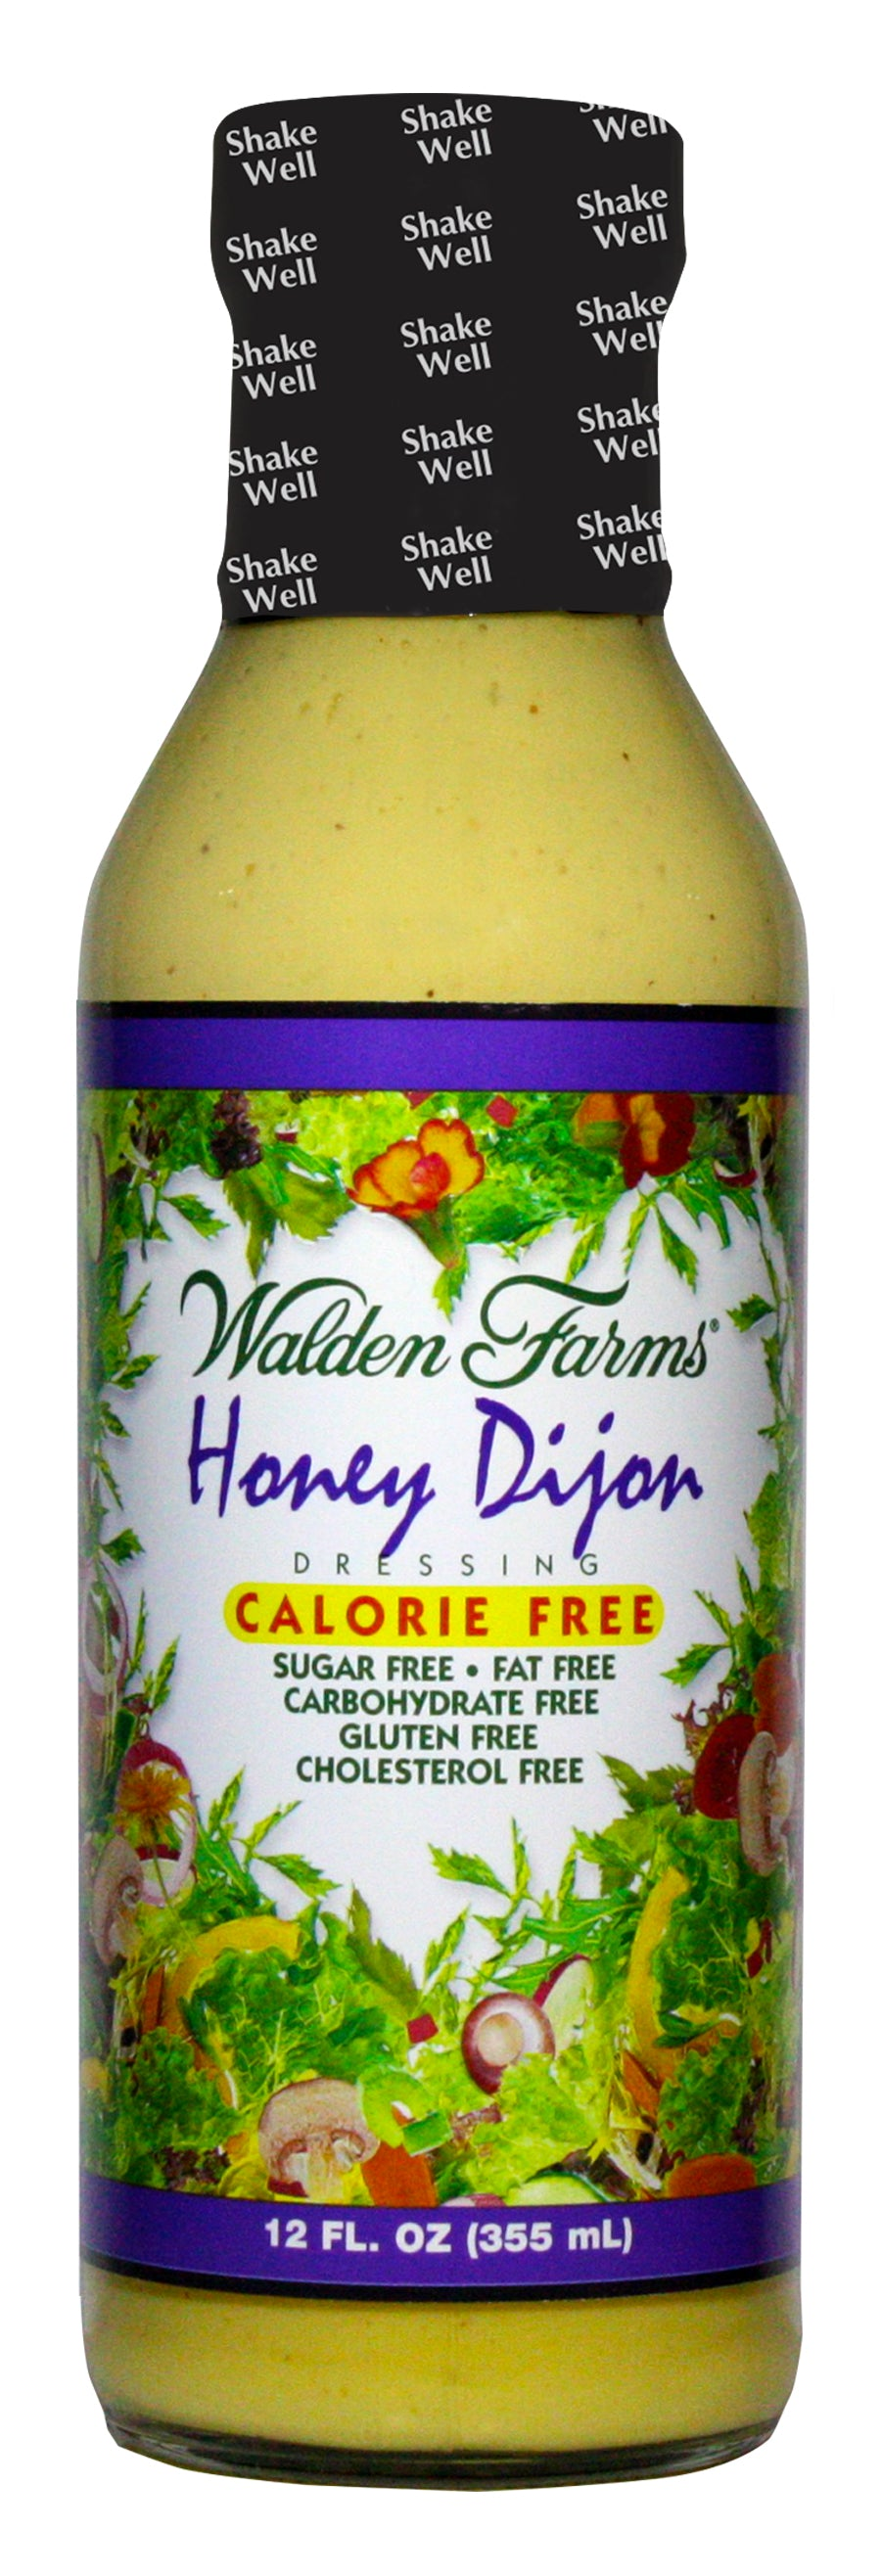 WF Honey Dijon Dressing Bottle